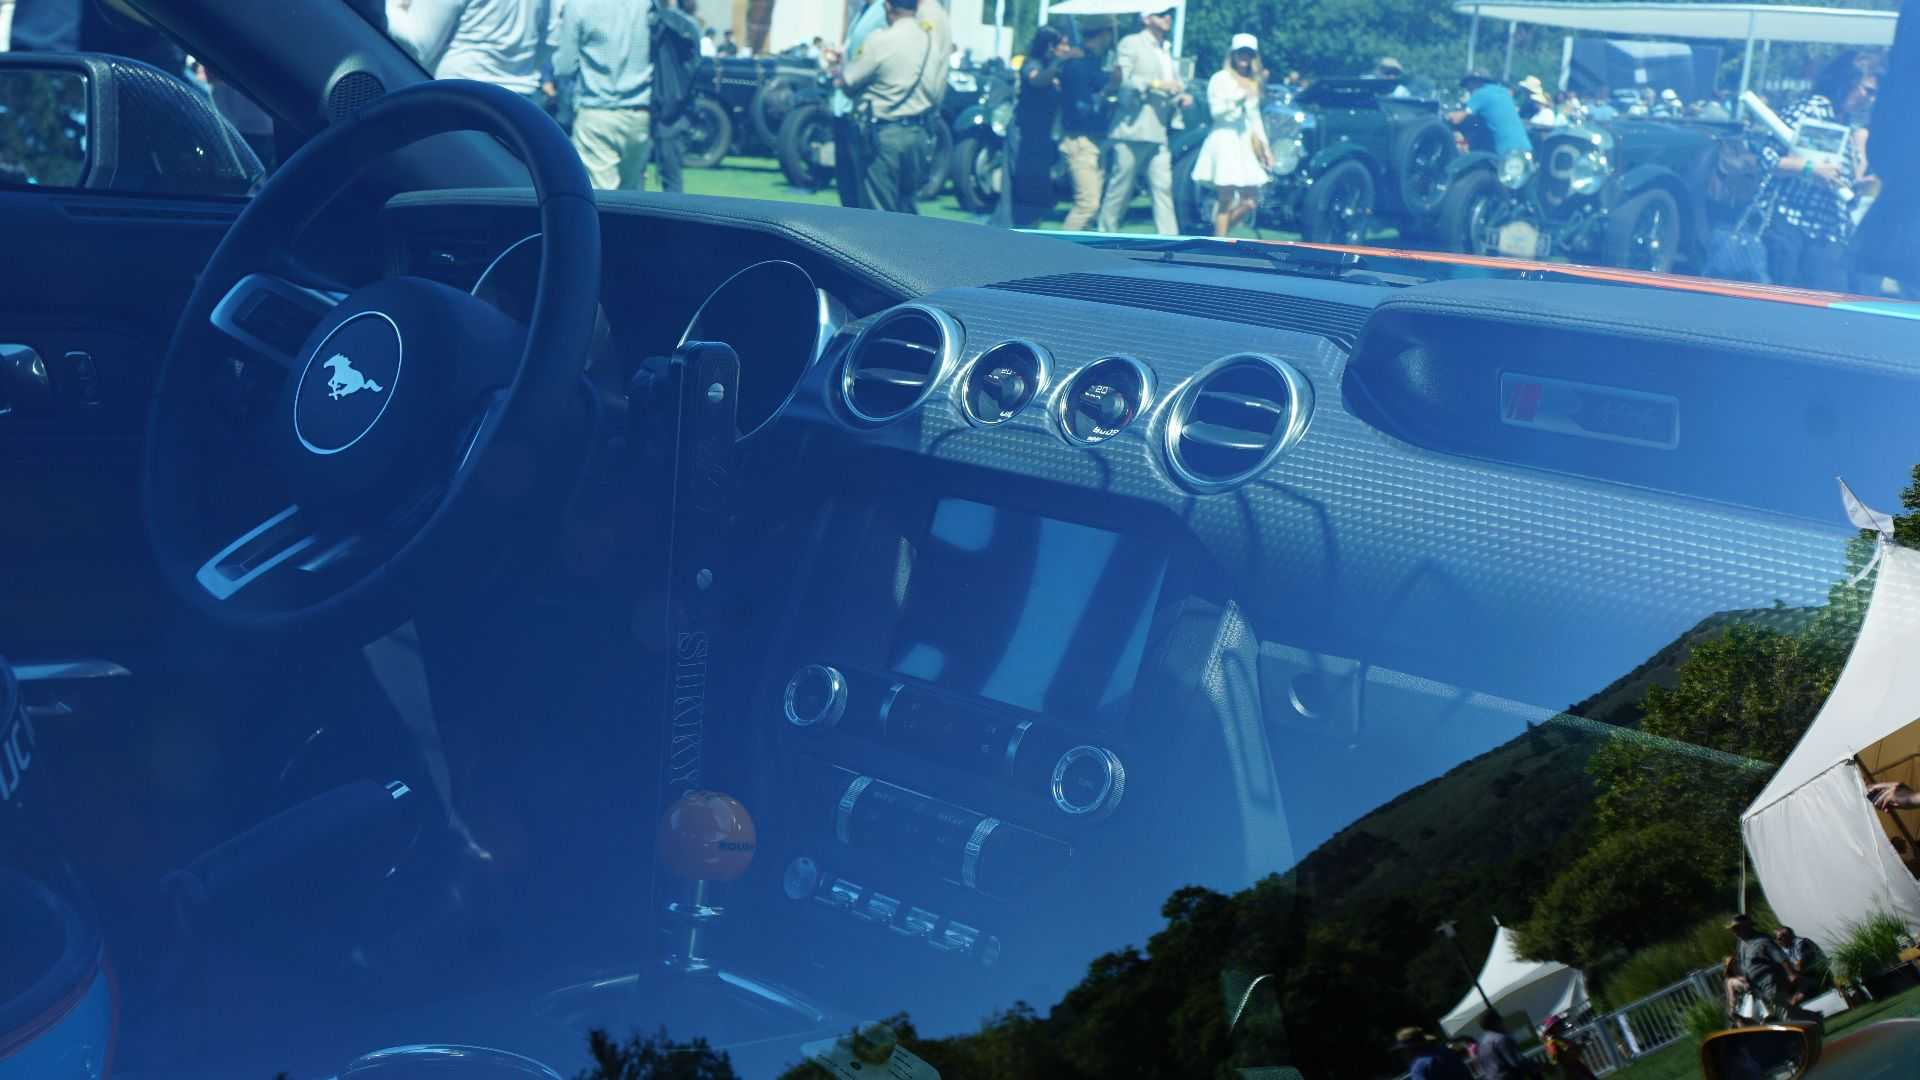 Check Out The Sights At Monterey Car Week